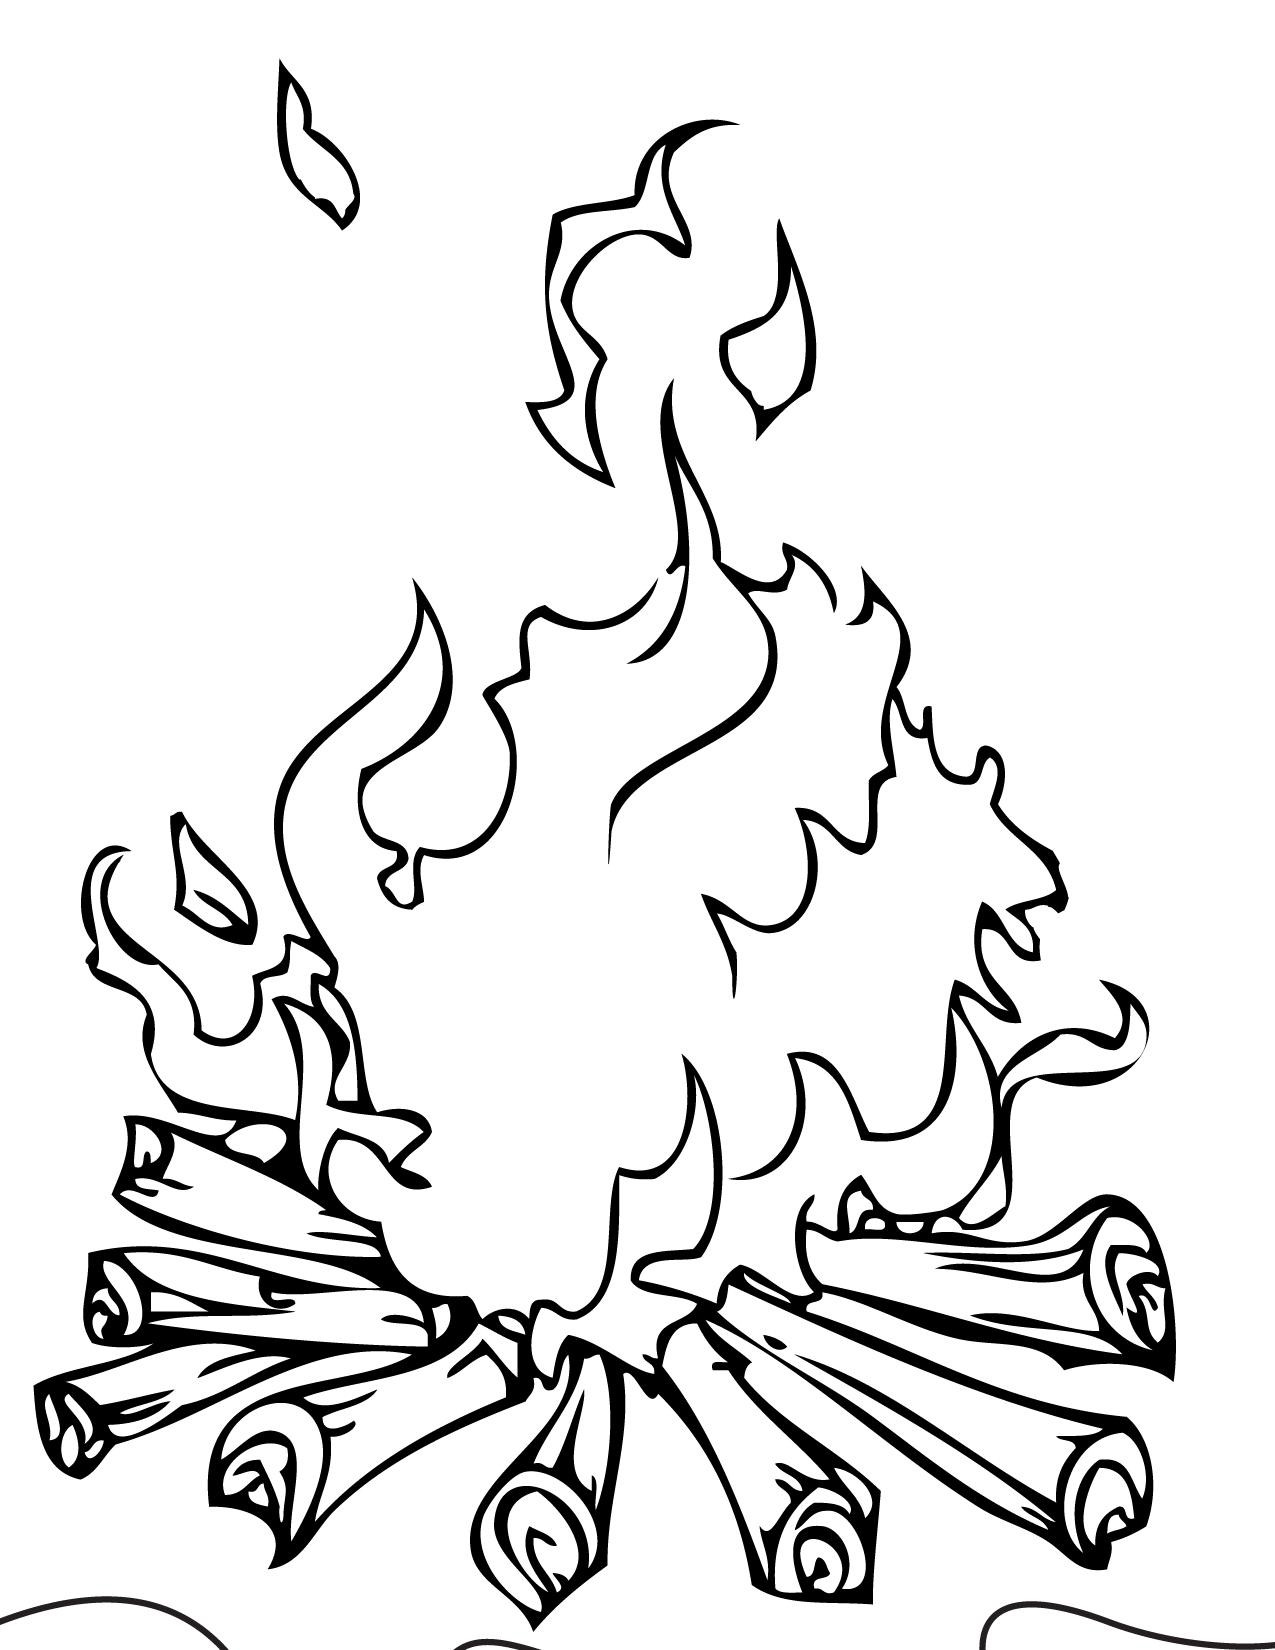 1275x1650 Wonderful Campfire Coloring Pages Printable With Camping Endear